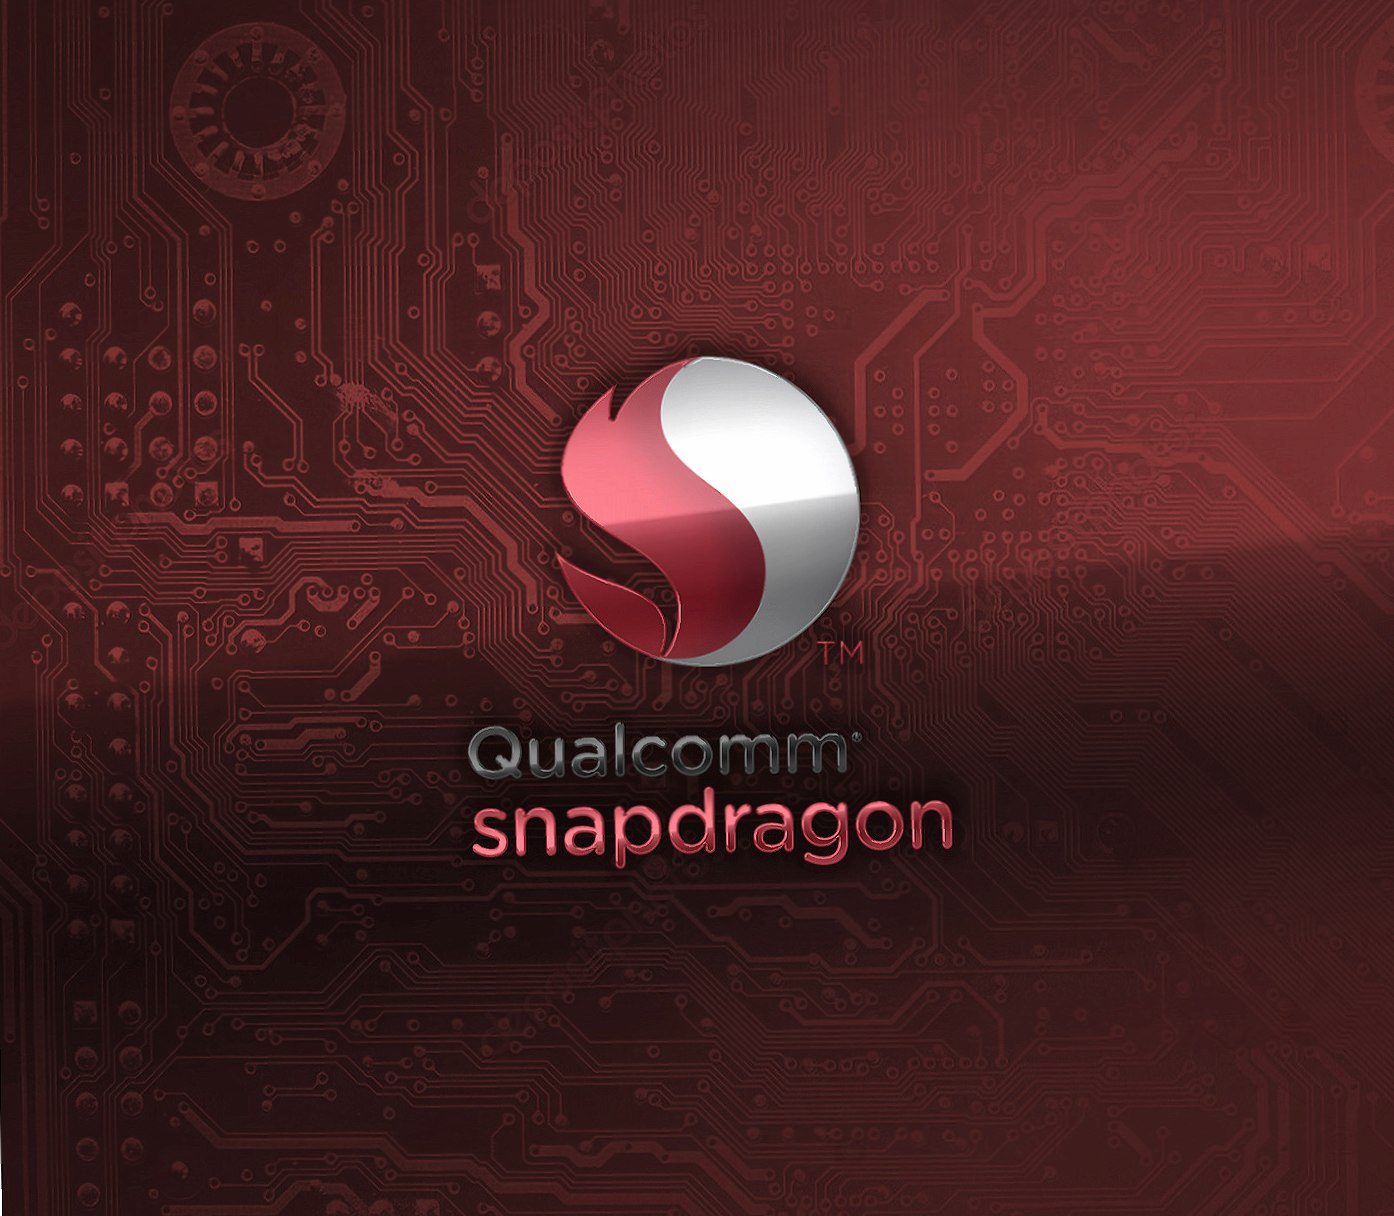 Qualcomm Snapdragon at 750 x 1334 iPhone 6 size wallpapers HD quality